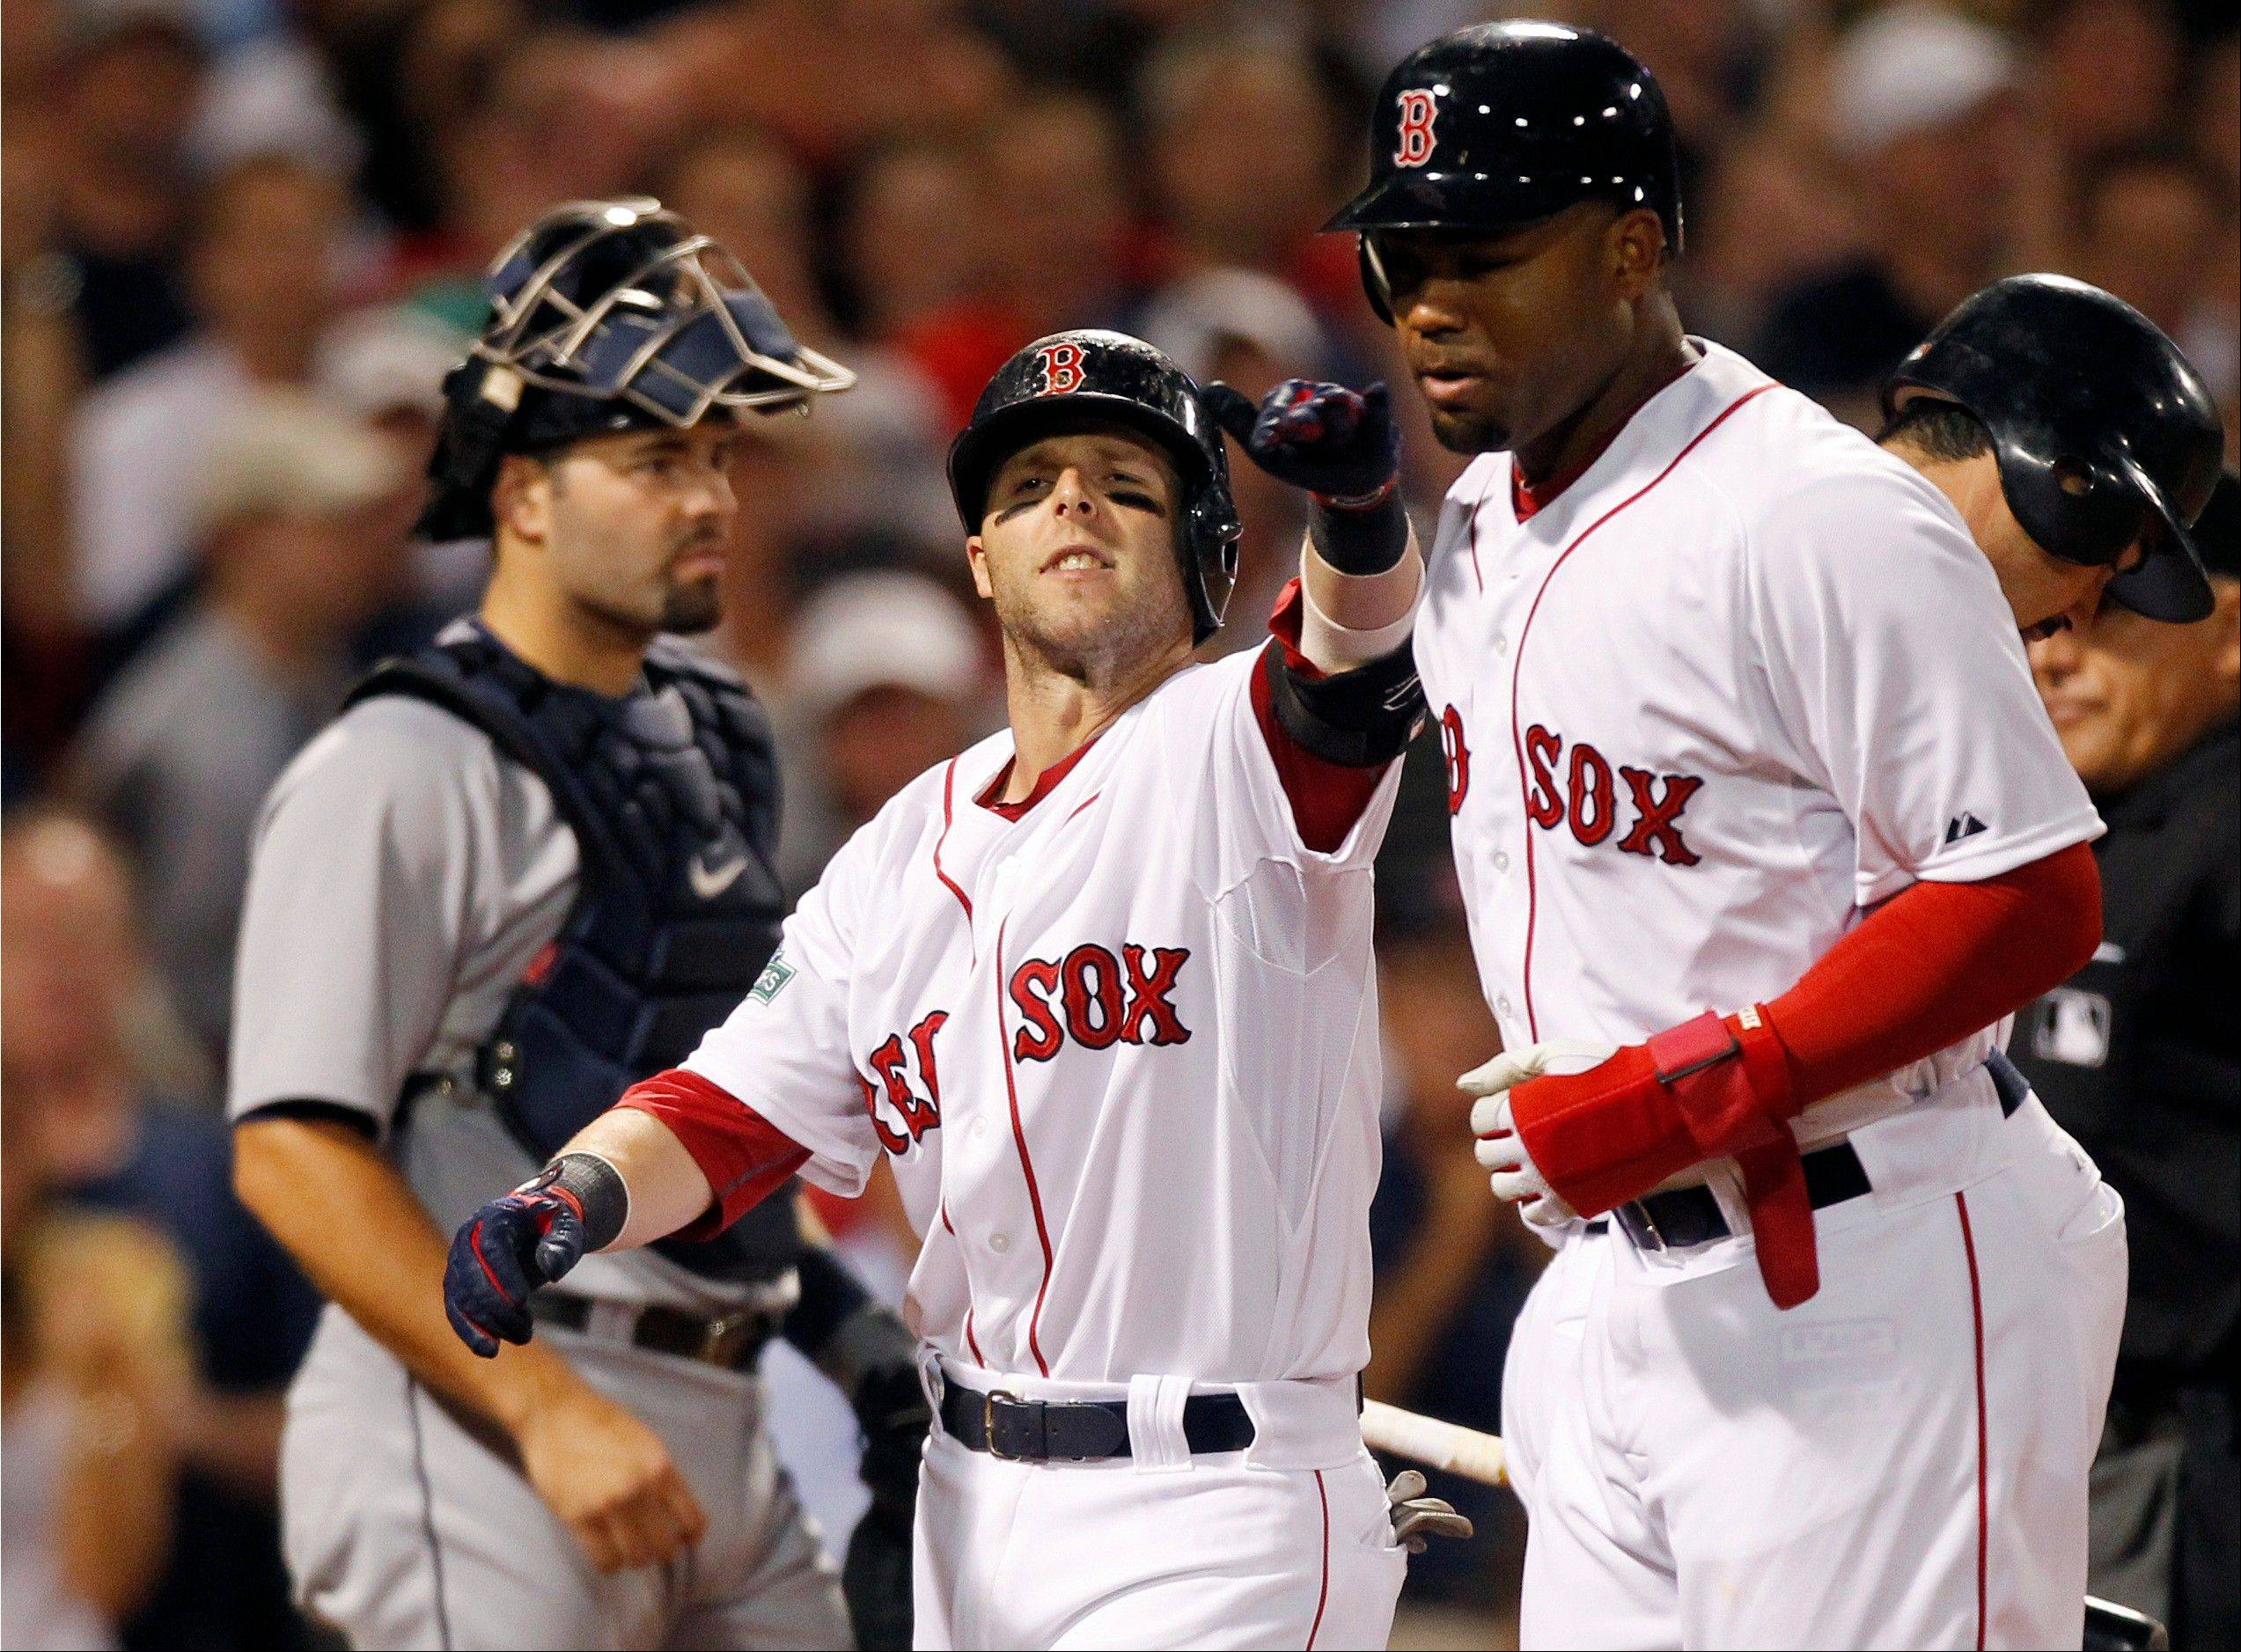 Boston�s Dustin Pedroia, center, celebrates his two-run home run that drove in Carl Crawford, right, in the sixth inning Monday at home against Detroit.